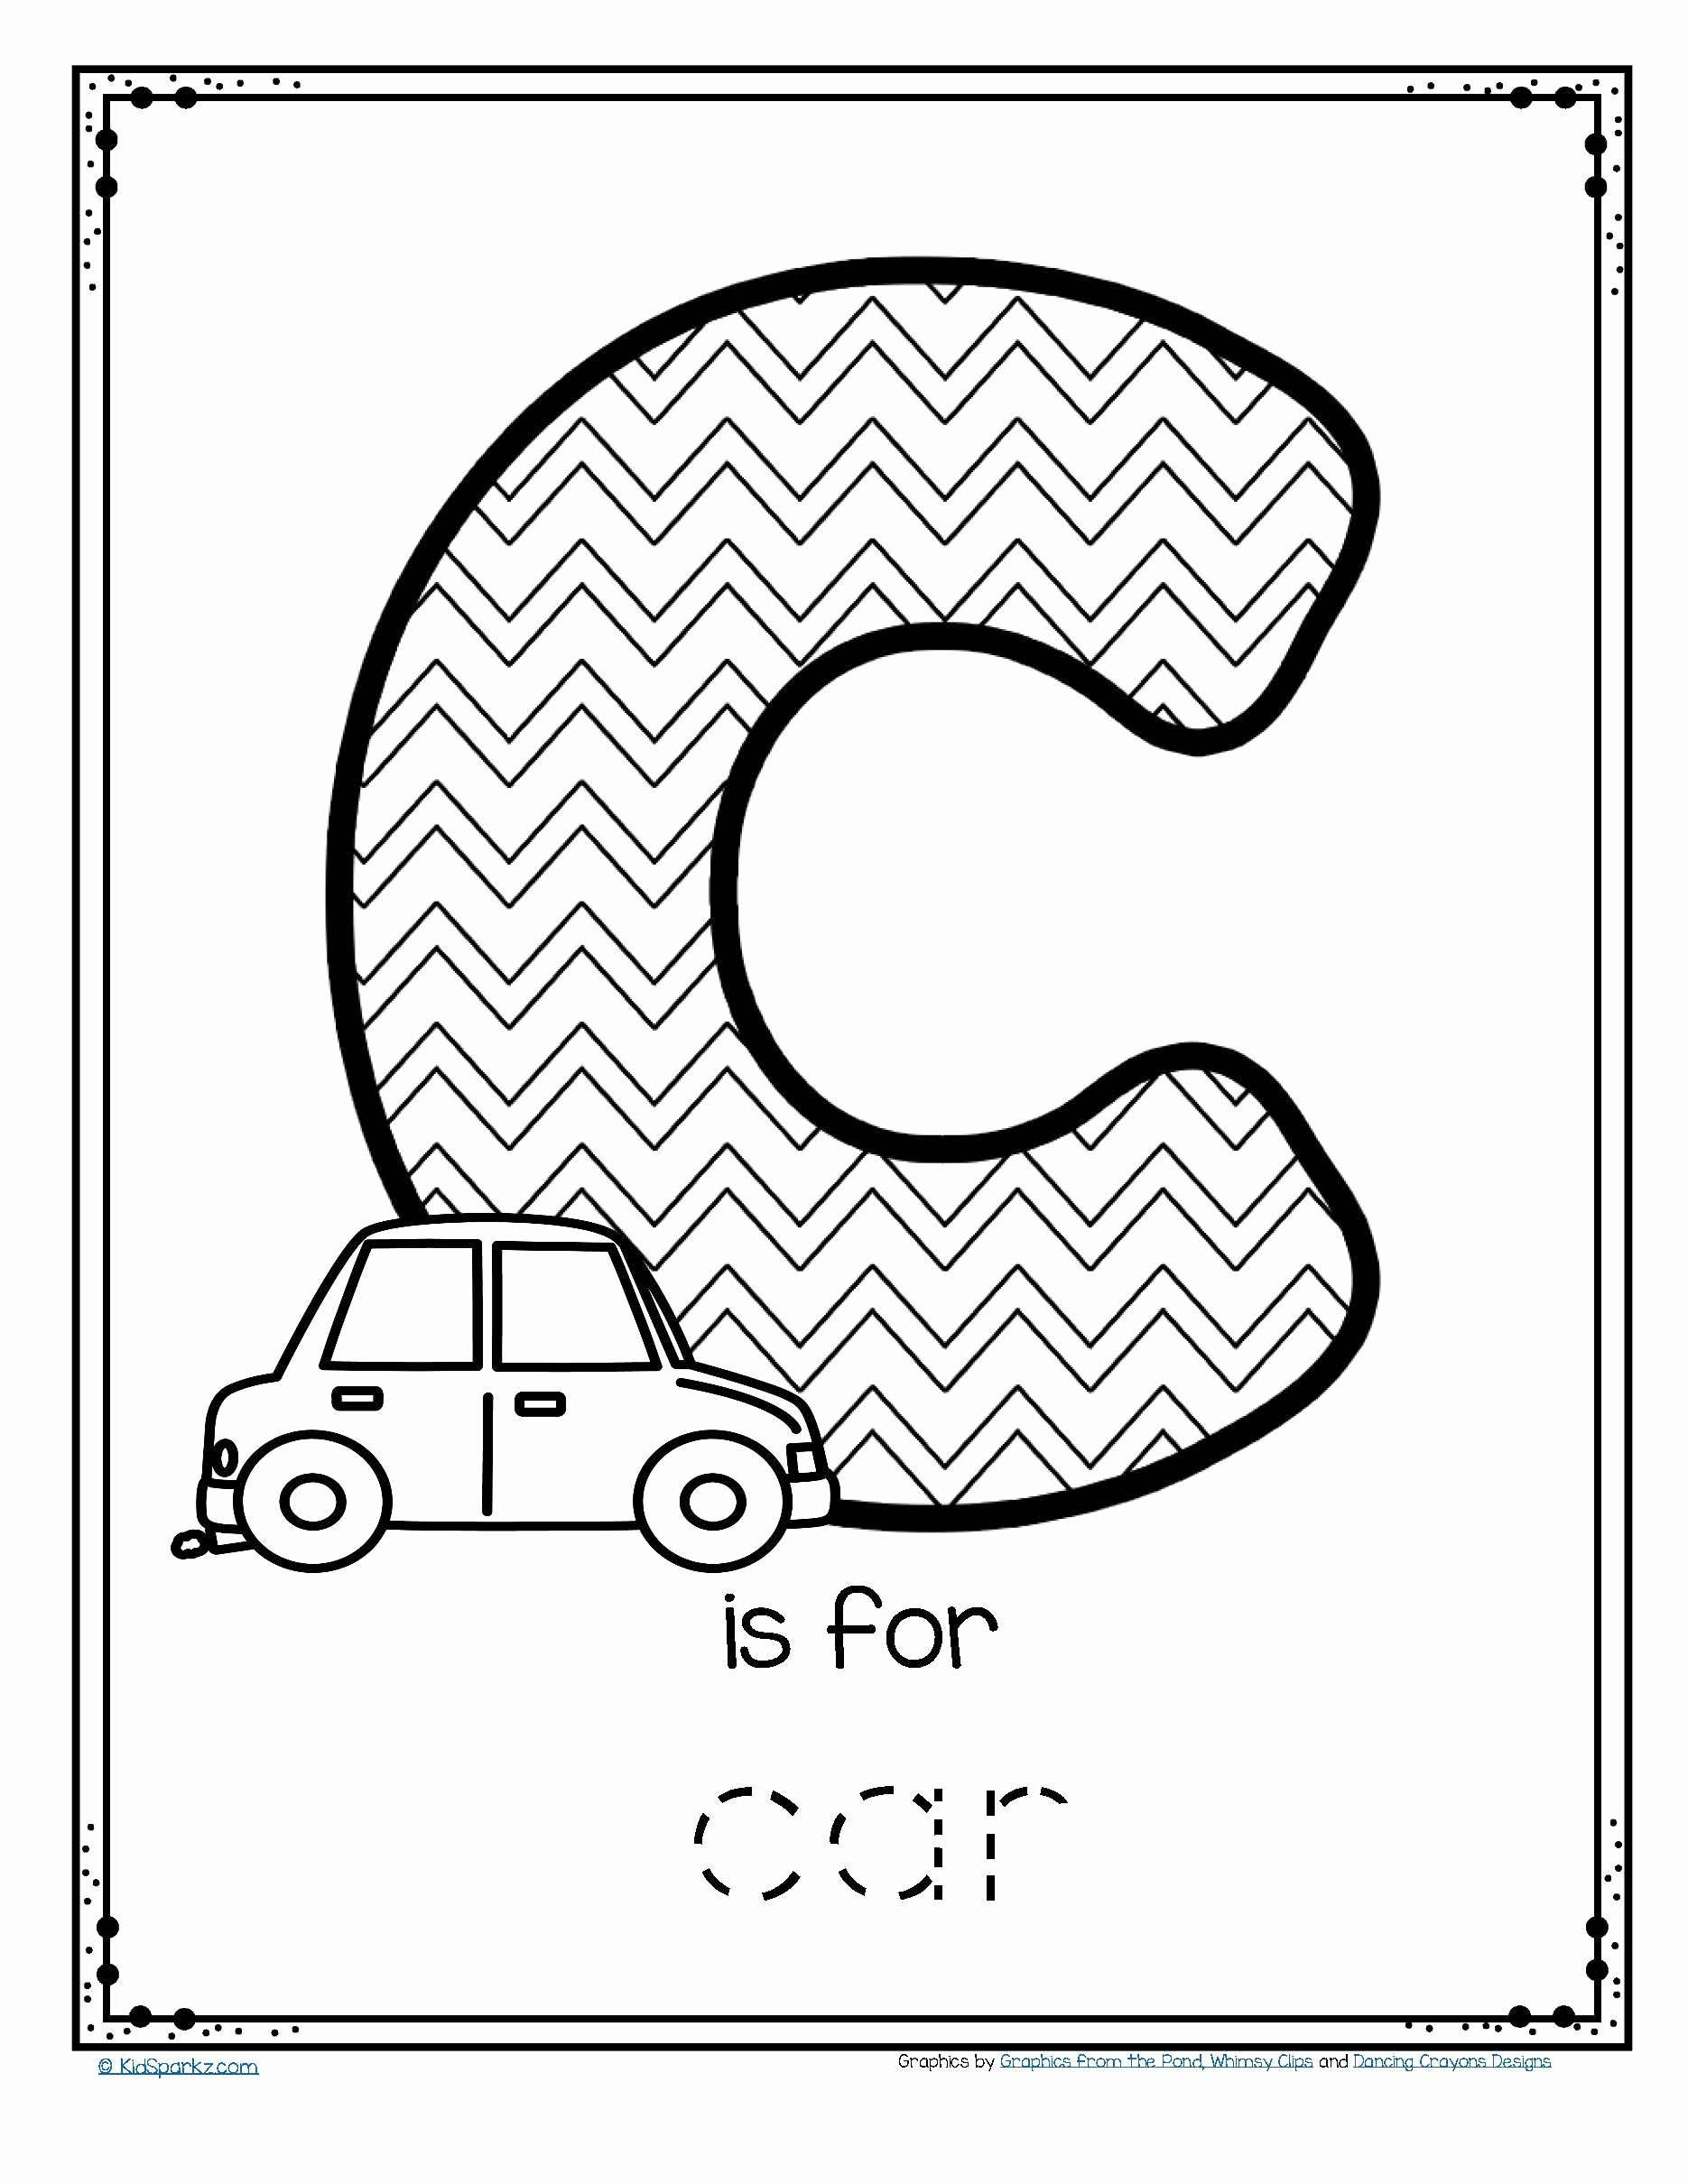 Car Worksheets for Preschoolers Best Of Worksheets Free is for Car Trace and Color Printable